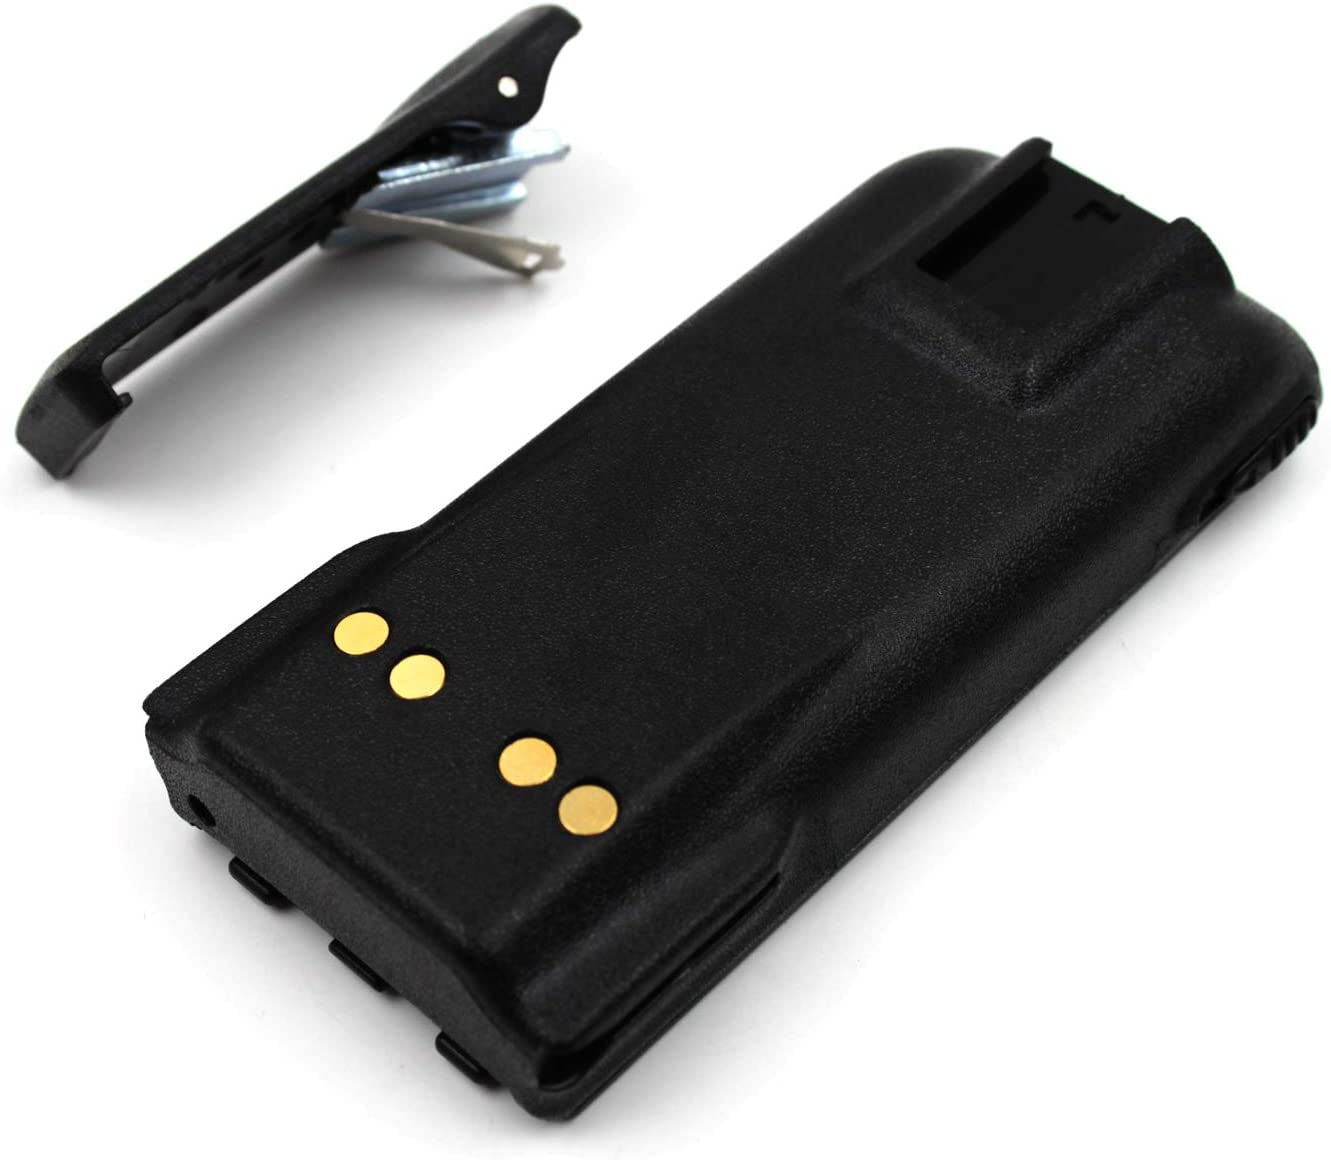 2-Pack 7.5V 2100mAh Ni-MH Two-Way Radio Battery for Motorola NTN9815//A//AR//B NTN9858//A//AR//B//C XTS1500 XTS2500 PR1500 MT1500 with Belt Clip